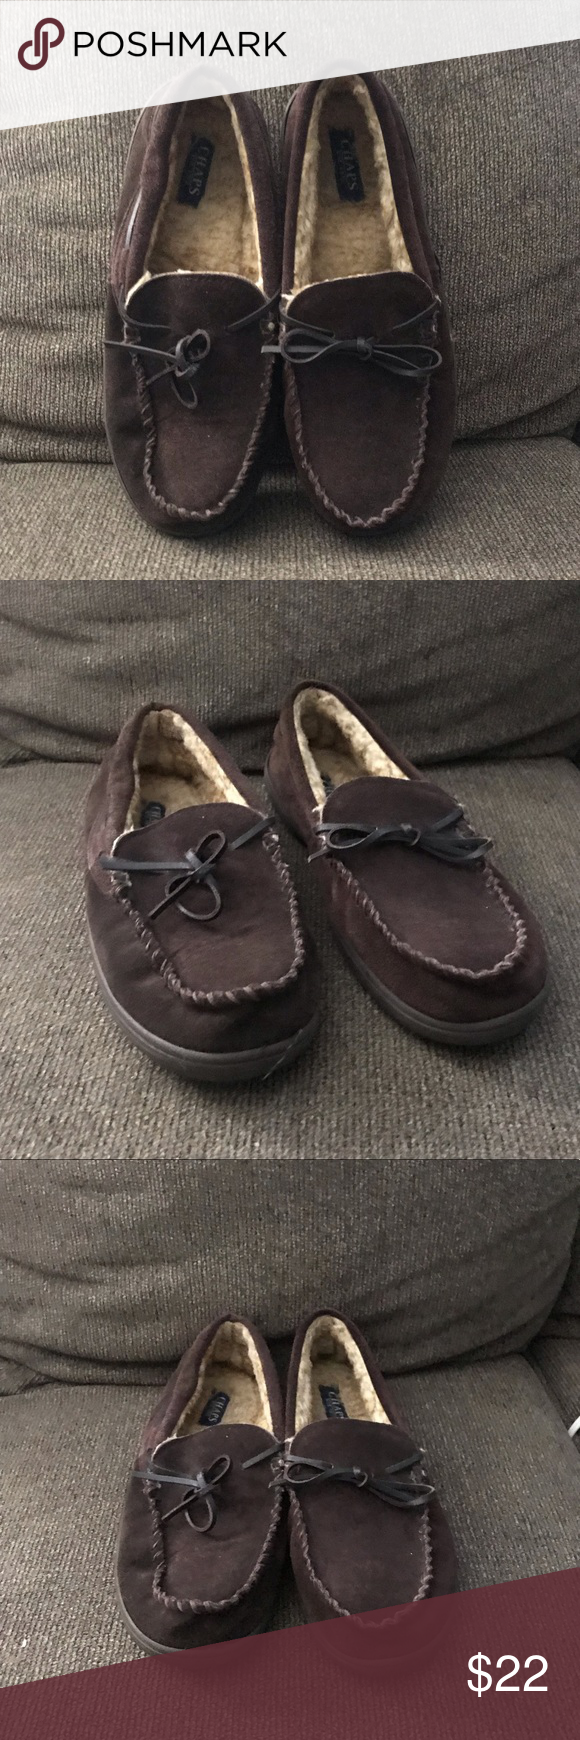 Chaps Mens Slippers Size L 9.5-10.5 Reasonable Price Slippers